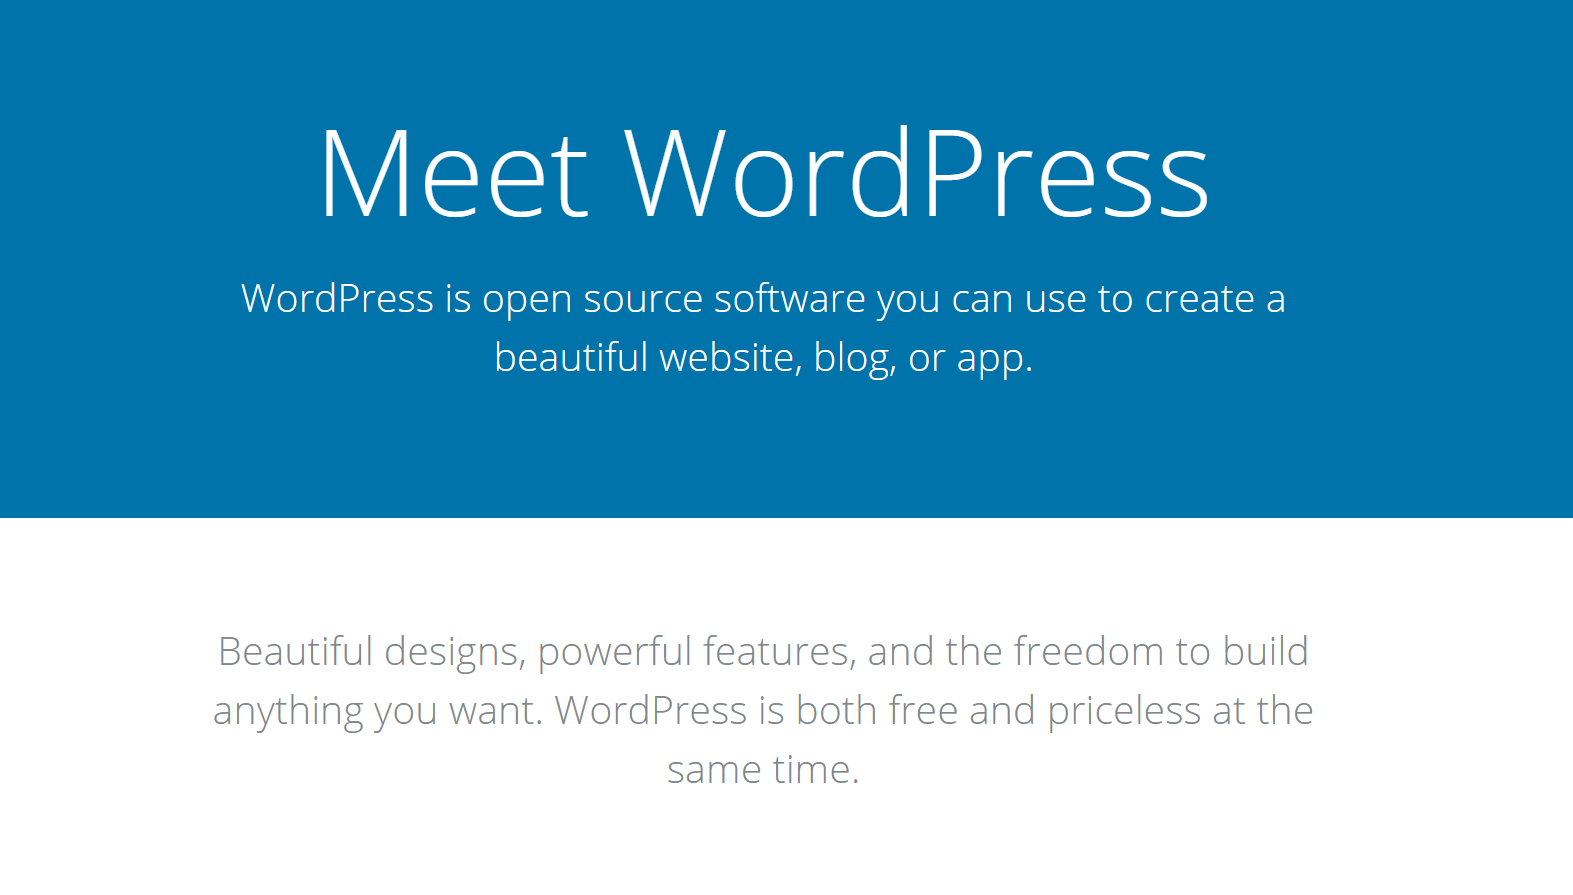 The WordPress website.